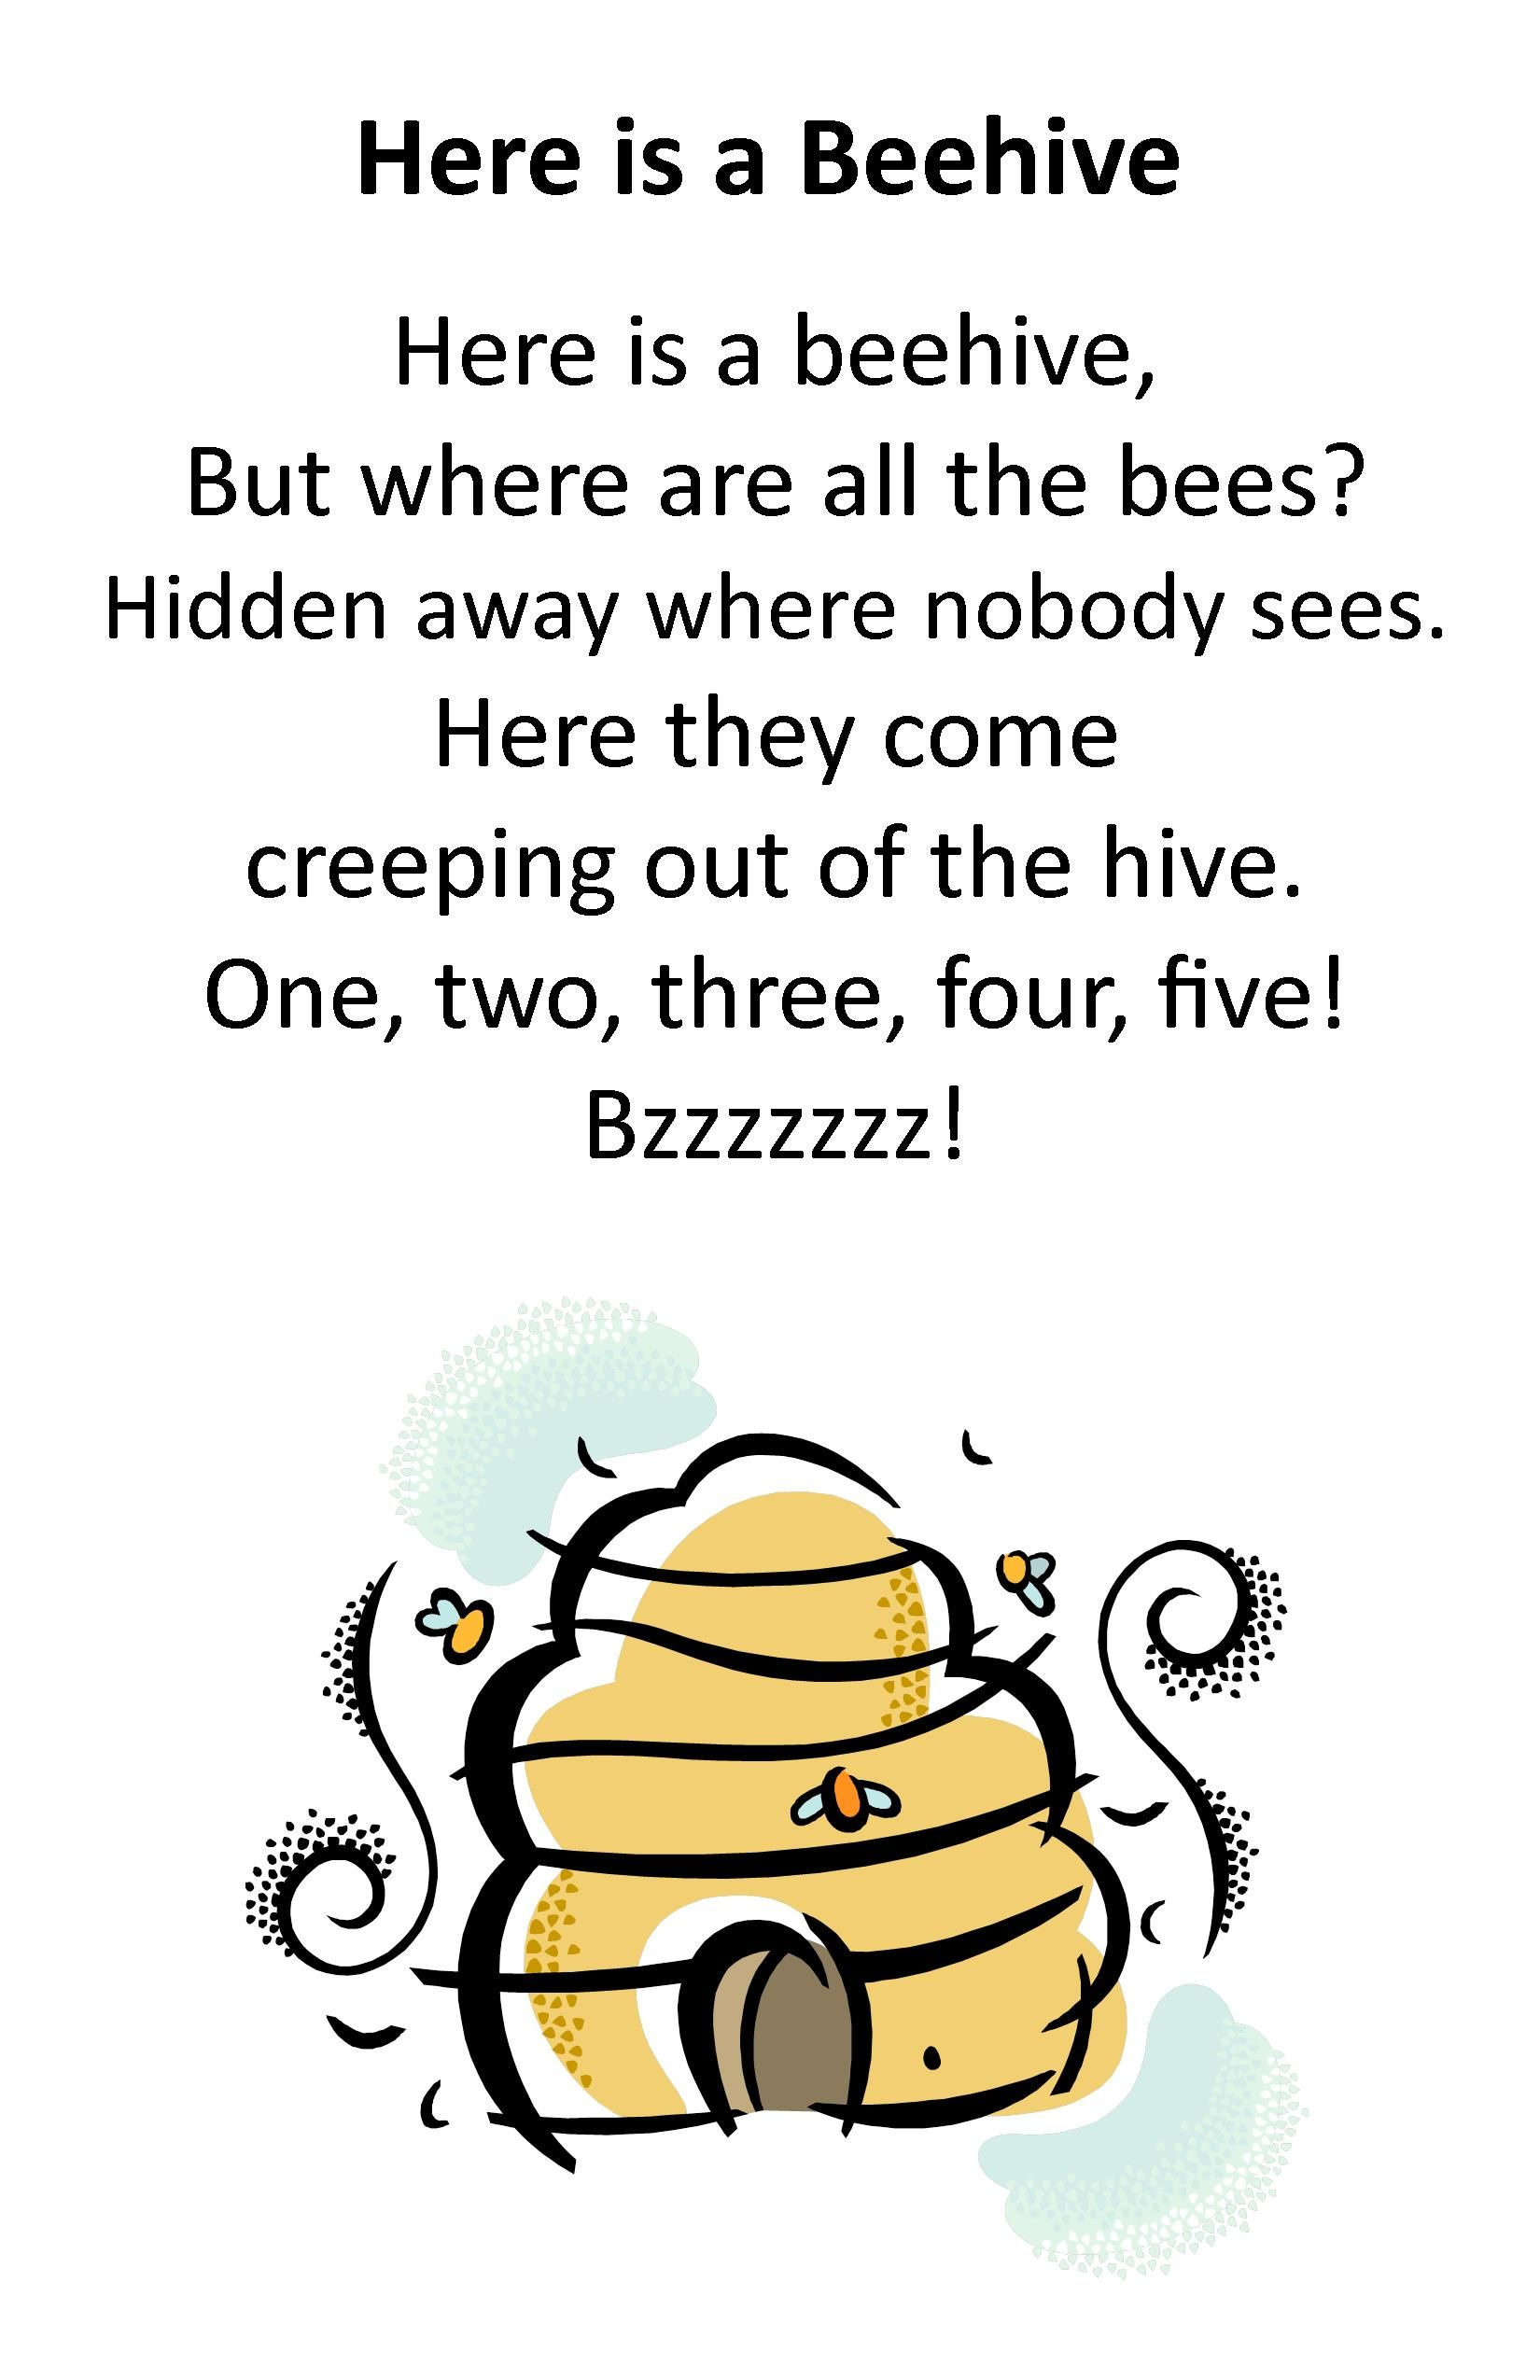 Itty Bitty Rhyme: Here is a Beehive | Itty Bitty ...